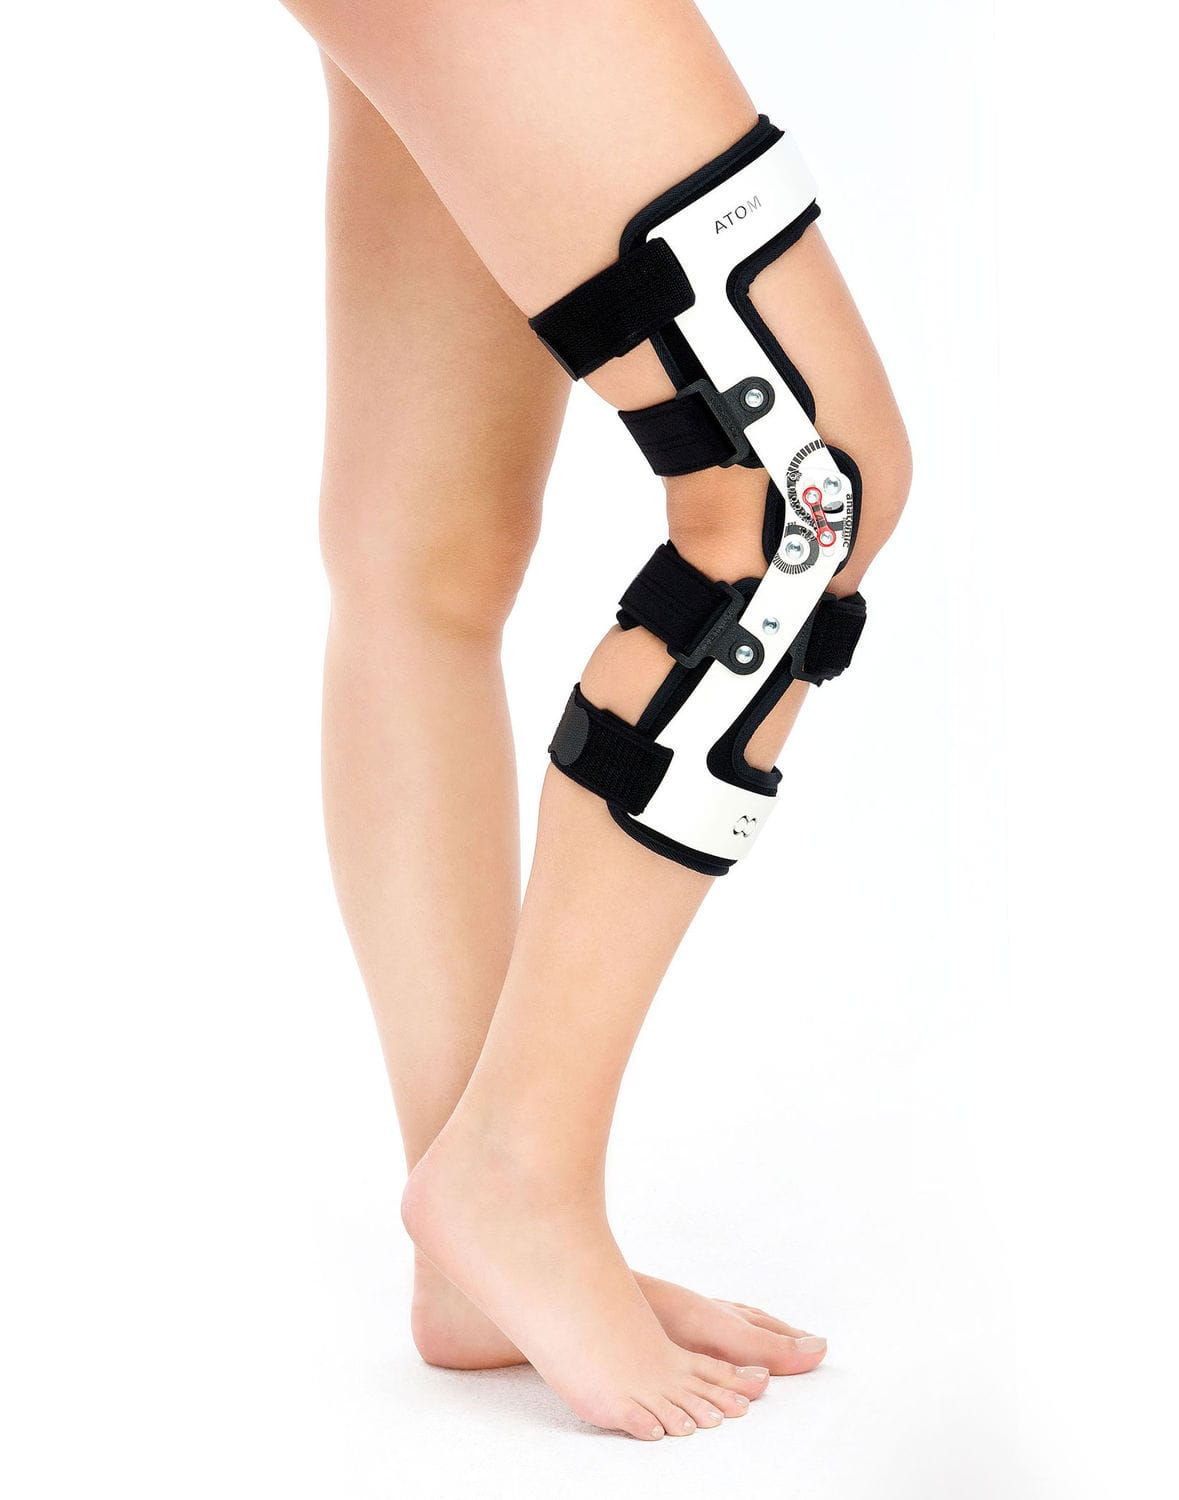 dbfd1fca2b Knee orthosis / knee ligament stabilization / articulated - ATOM/2RA ...